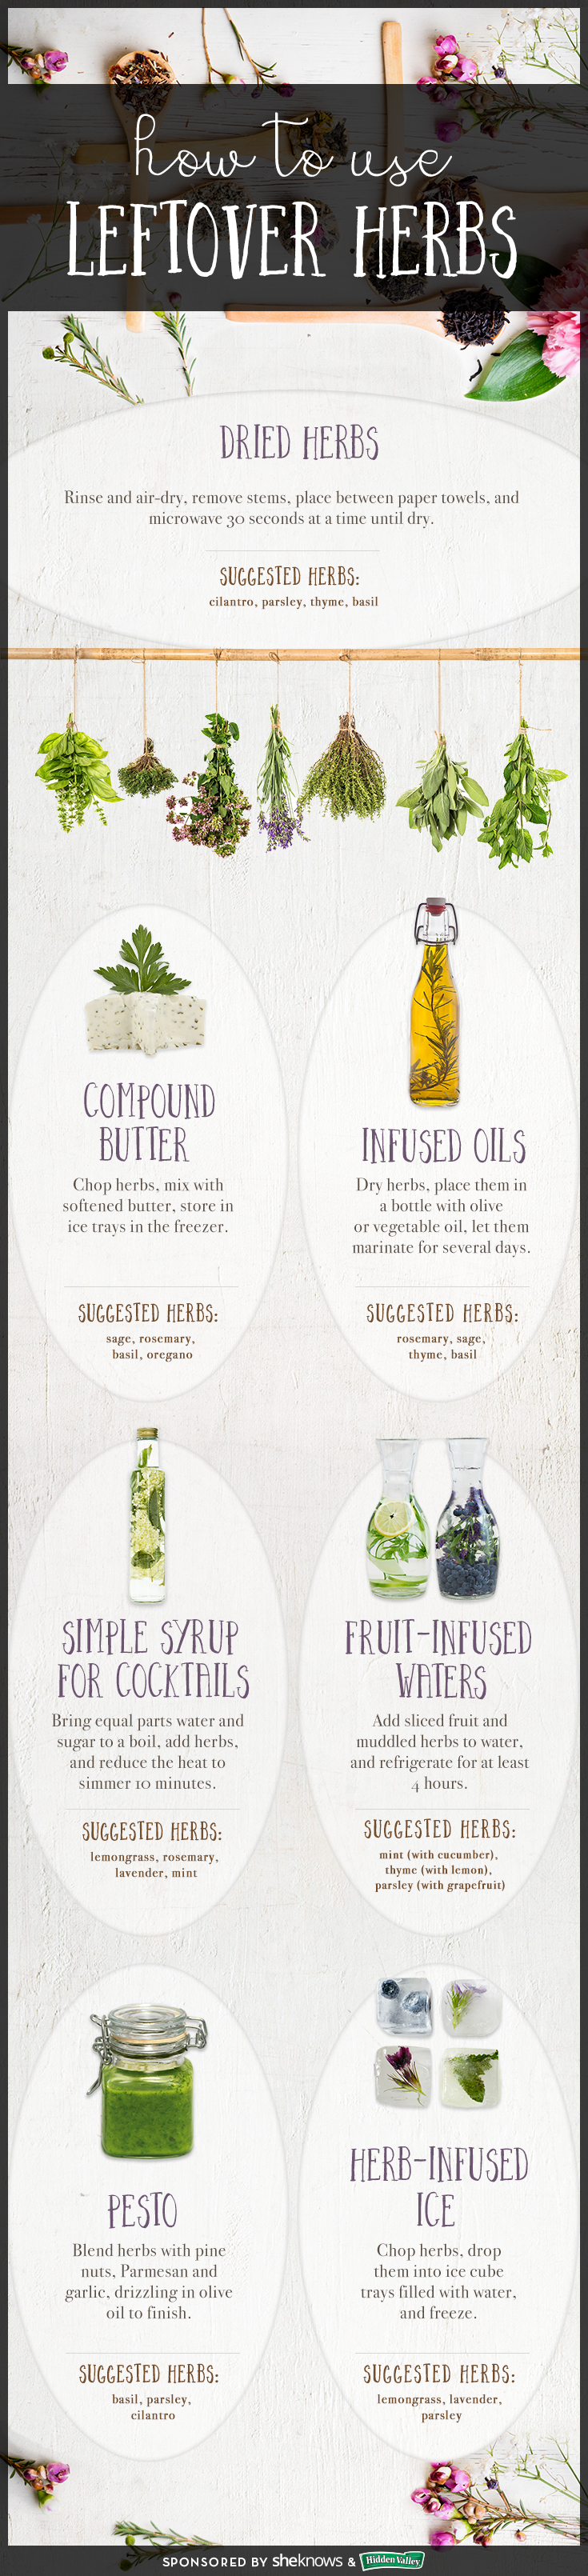 leftover herb uses